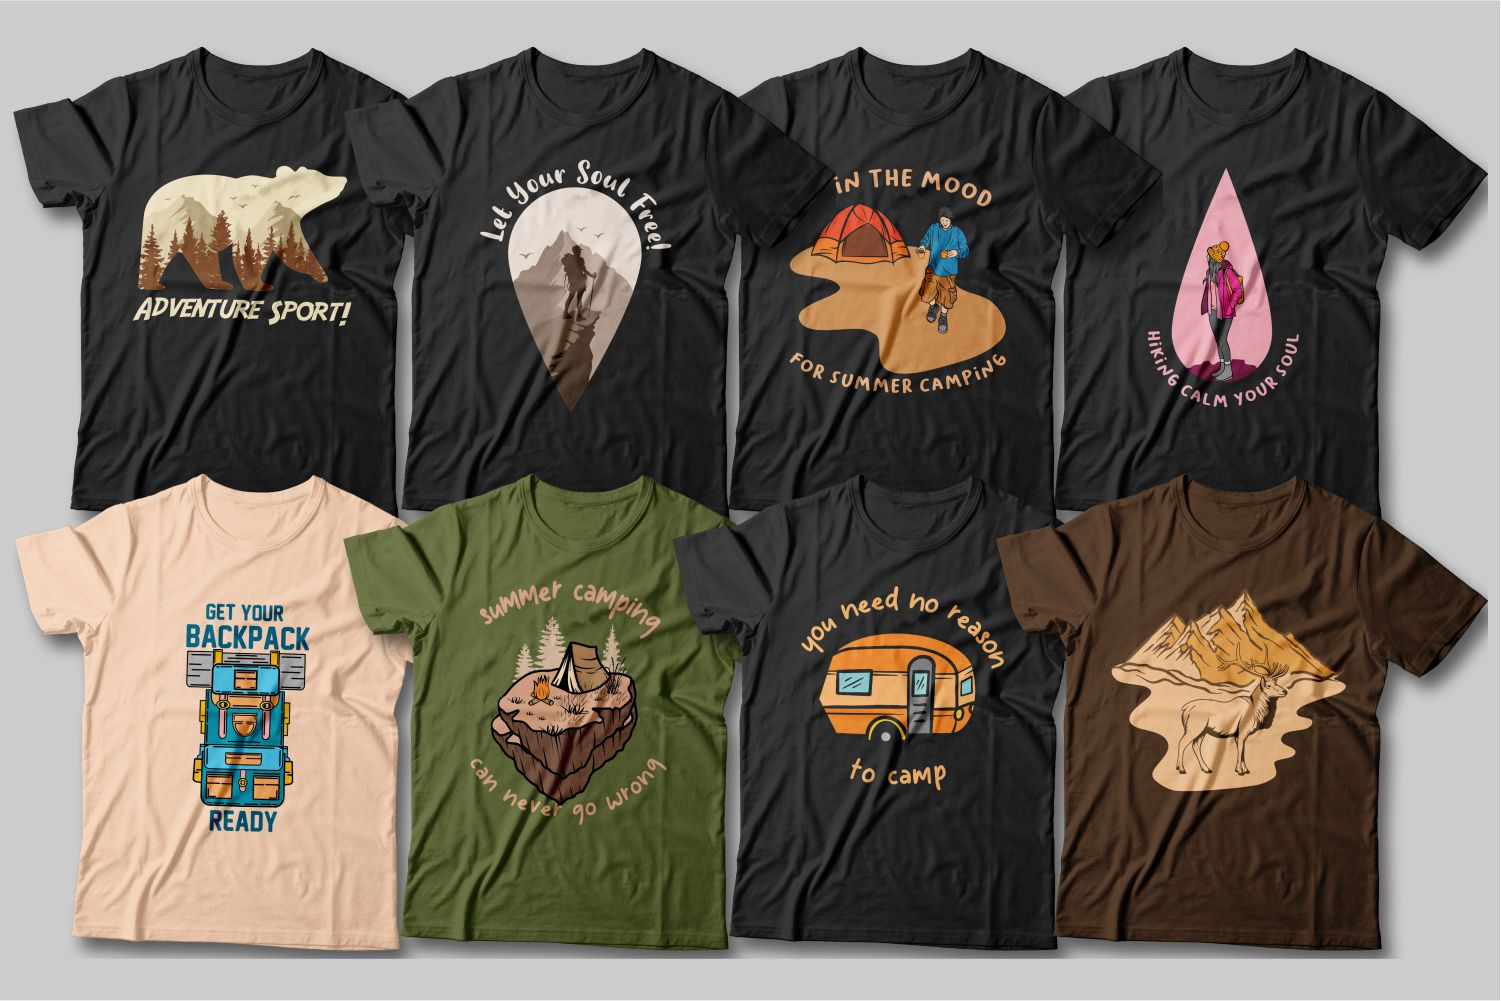 Everyone has their own associations with nature and hiking. These T-shirts reveal the most popular associative range on this topic.